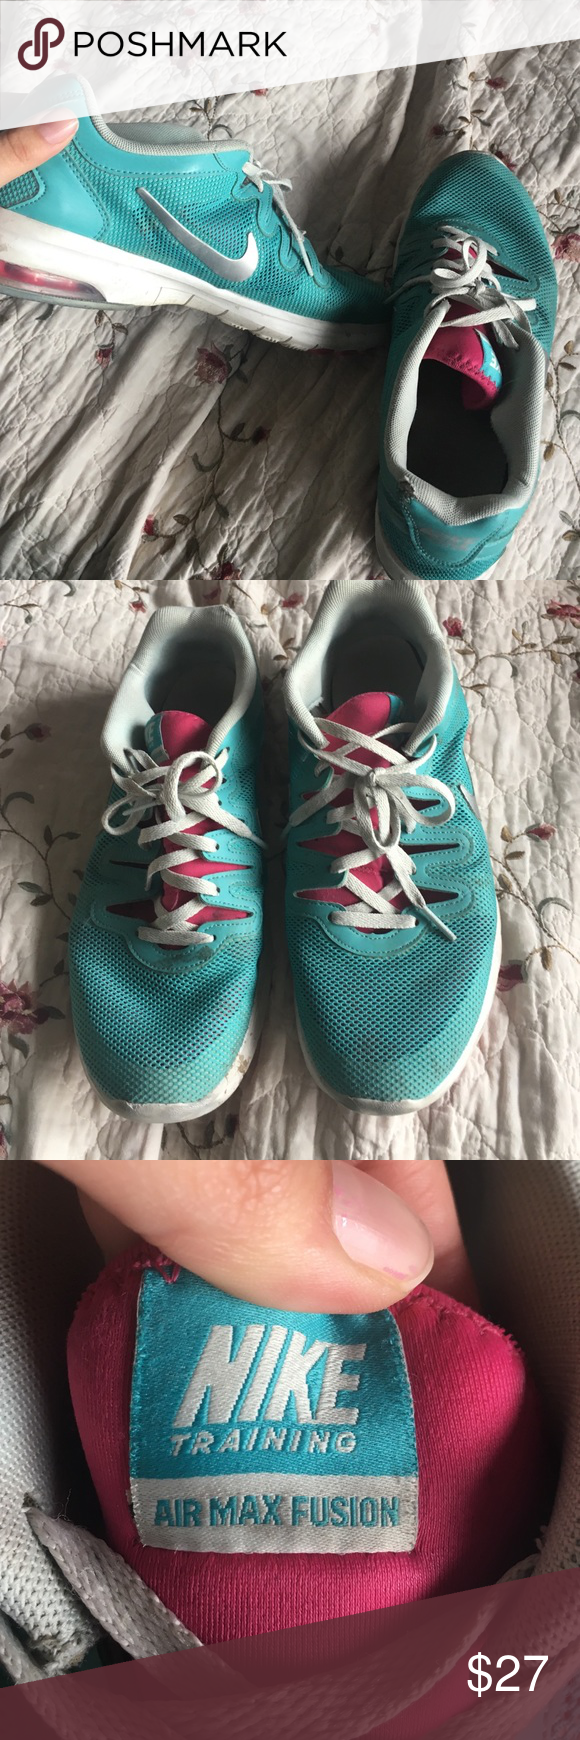 Nike running shoes Gently worn. Fits comfortably:) Nike Shoes Athletic Shoes